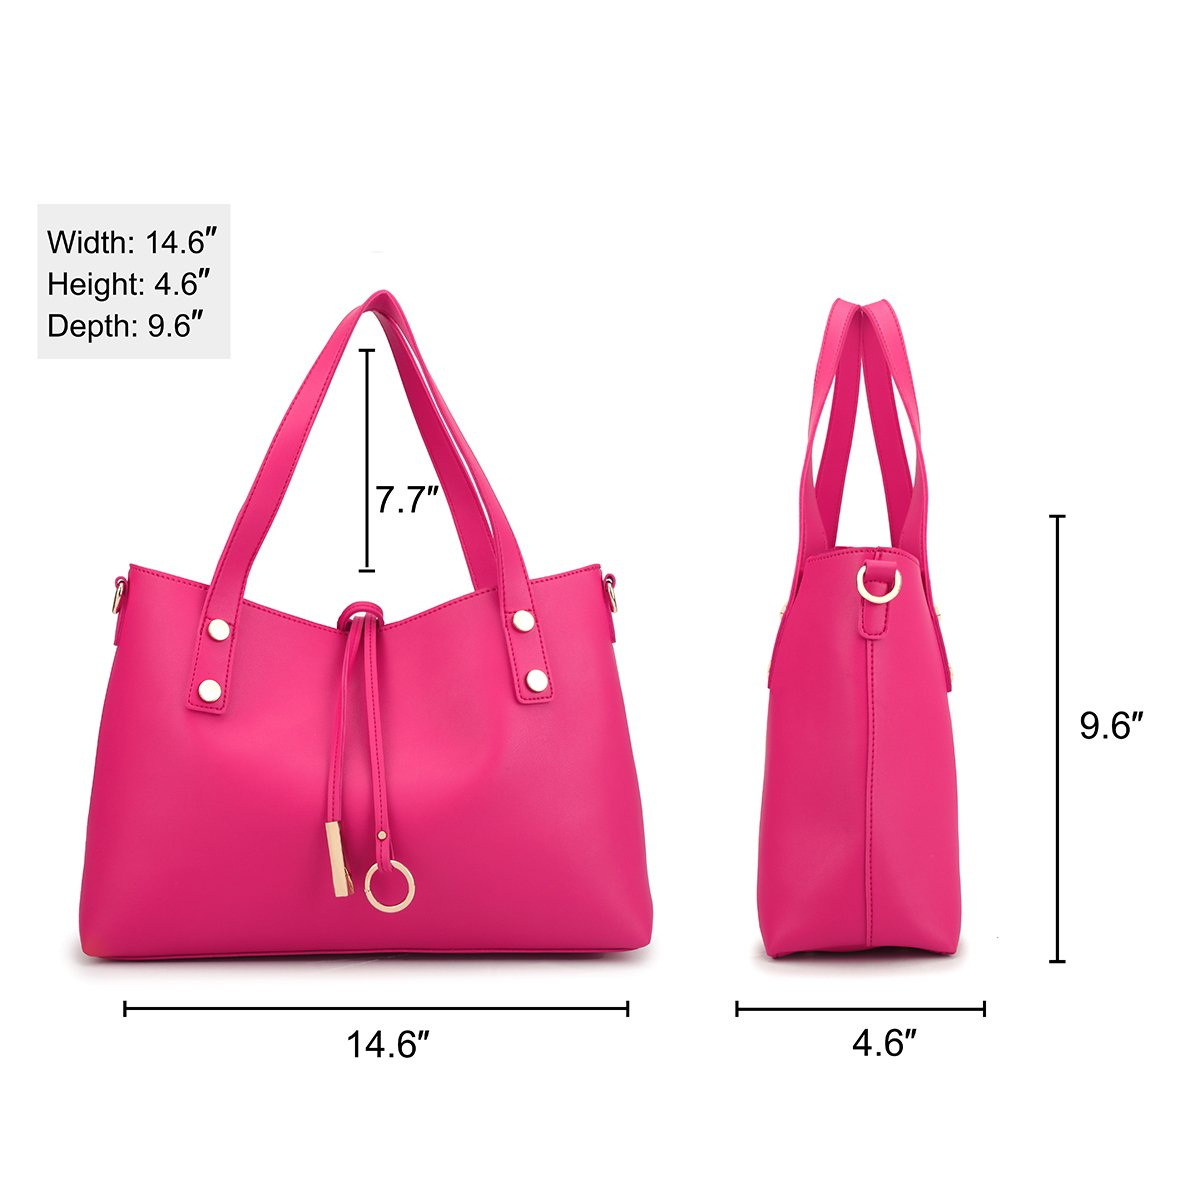 2e103d1f8152 Amazon.com: MKP Collection Faux Leather Soft Tote with Detachable ...